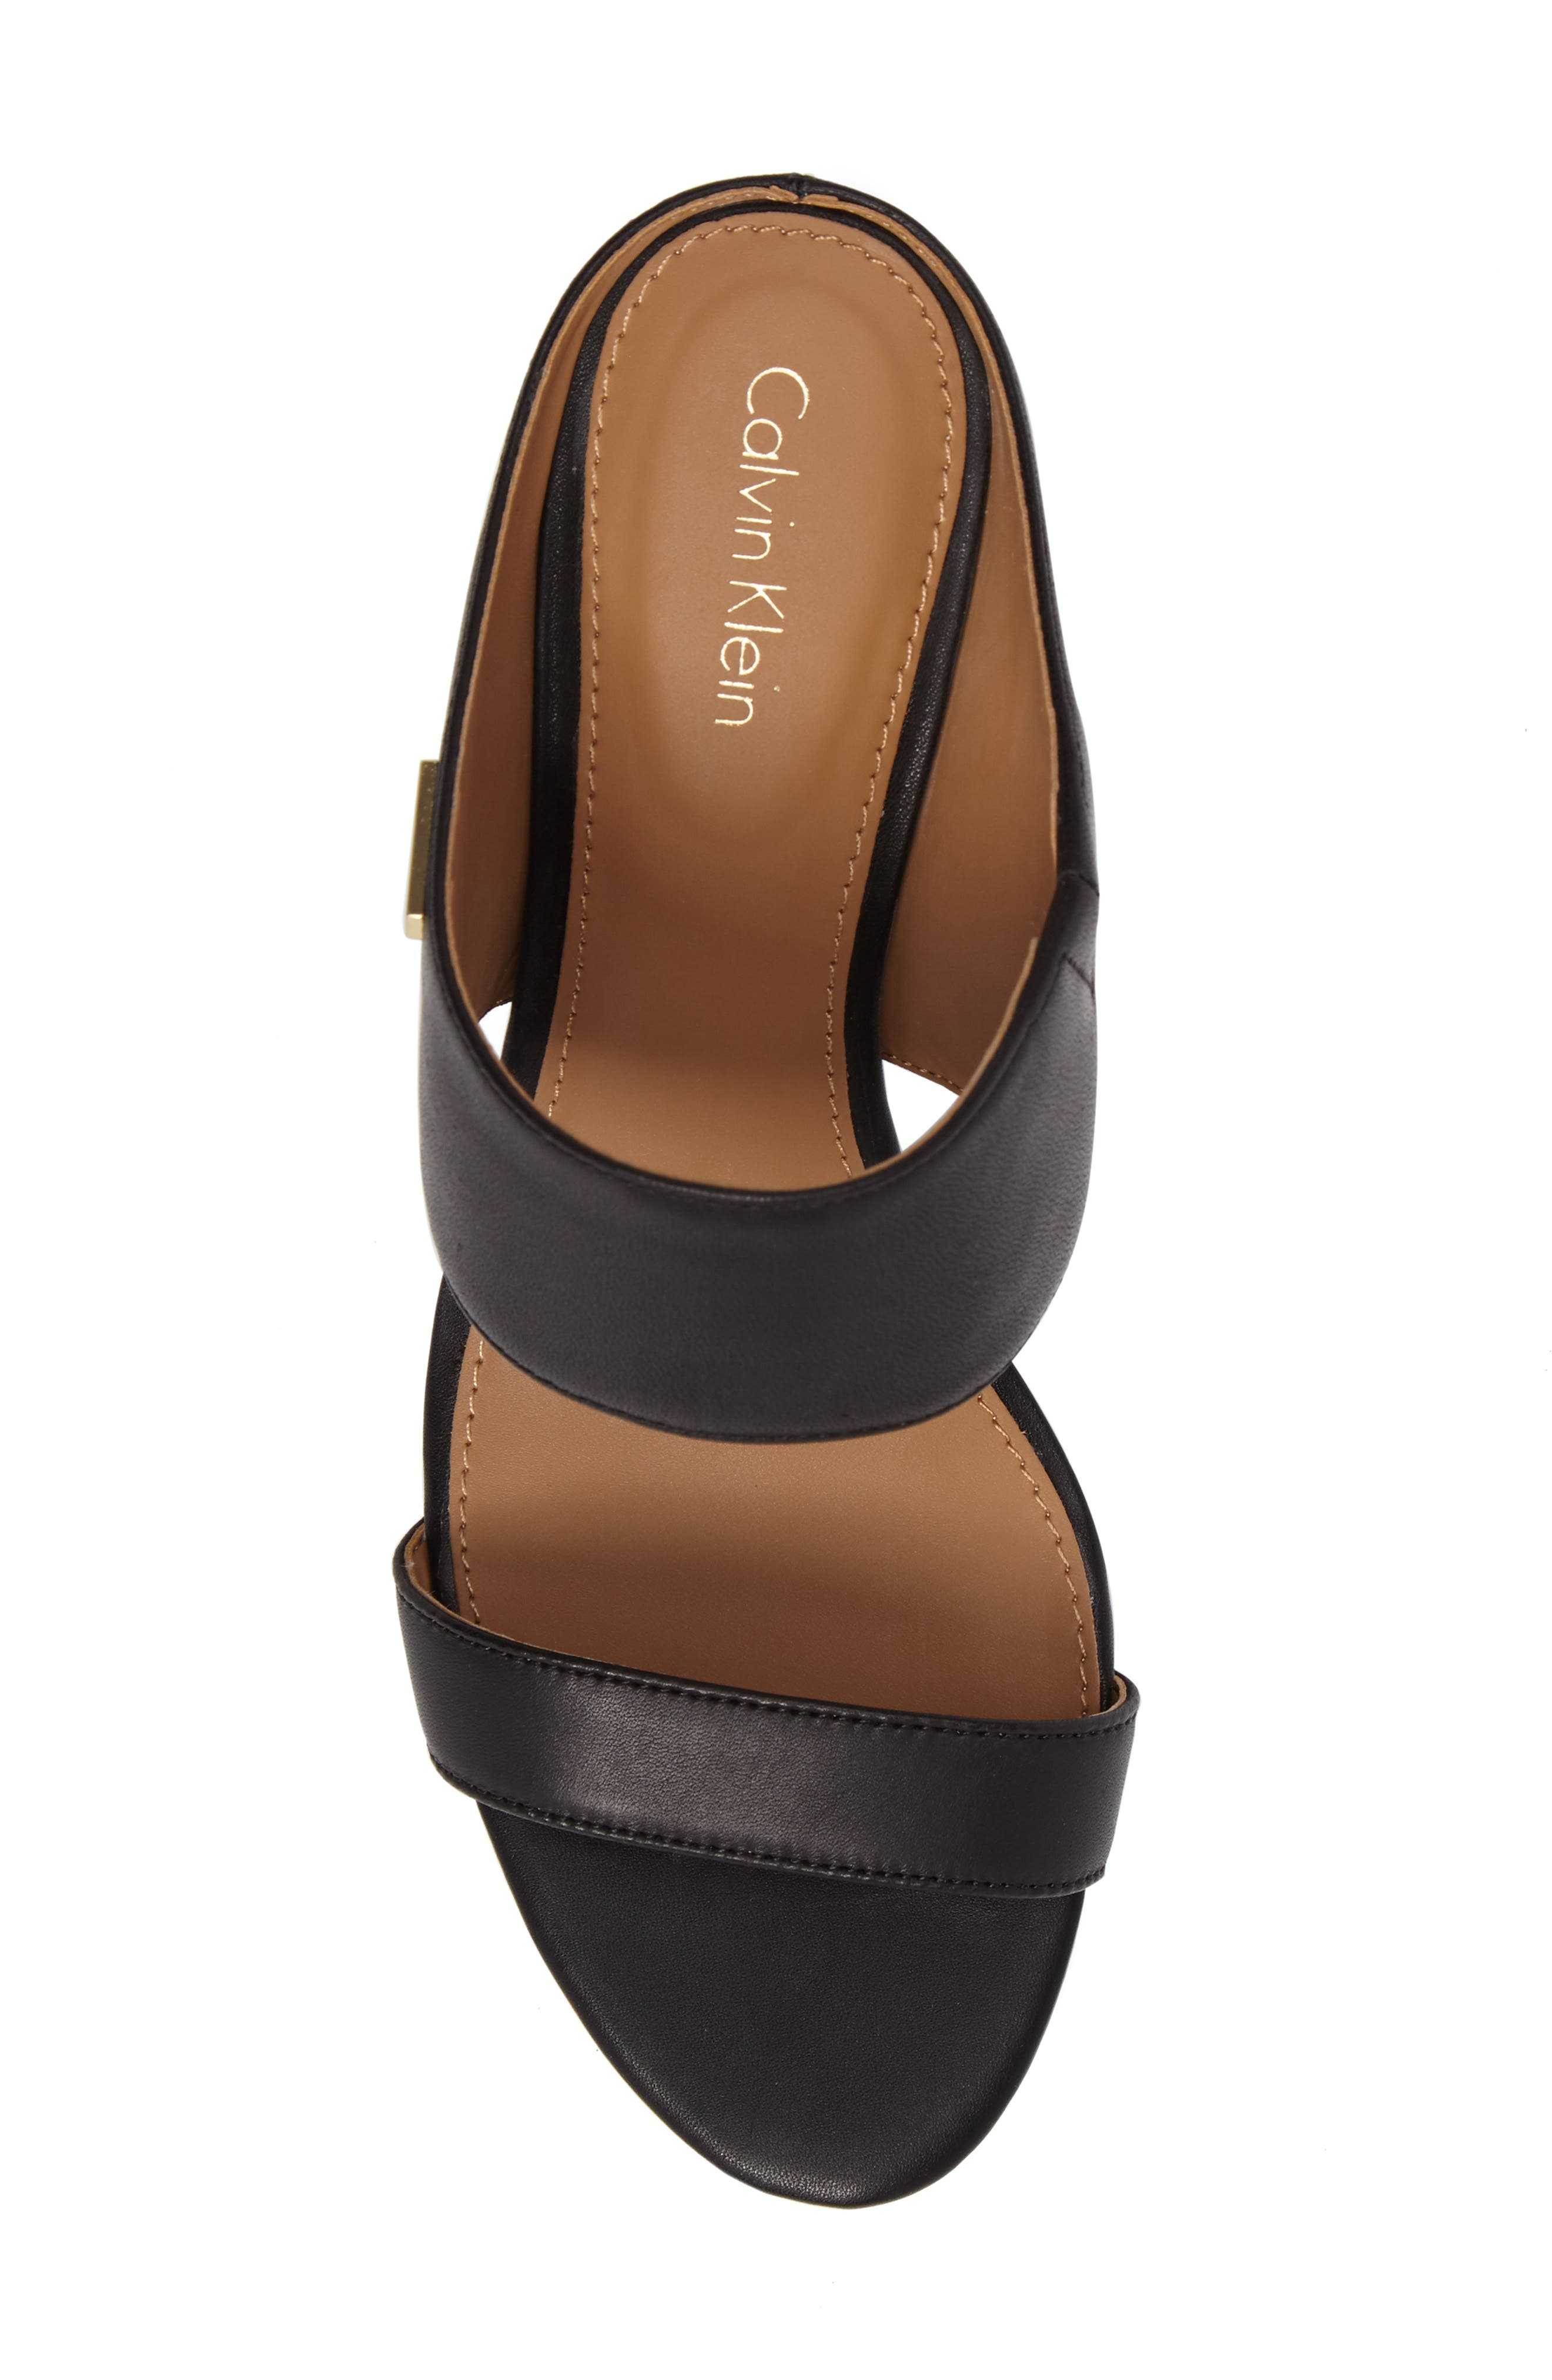 Phyllis Studded Wedge Sandal,                             Alternate thumbnail 5, color,                             Black Leather